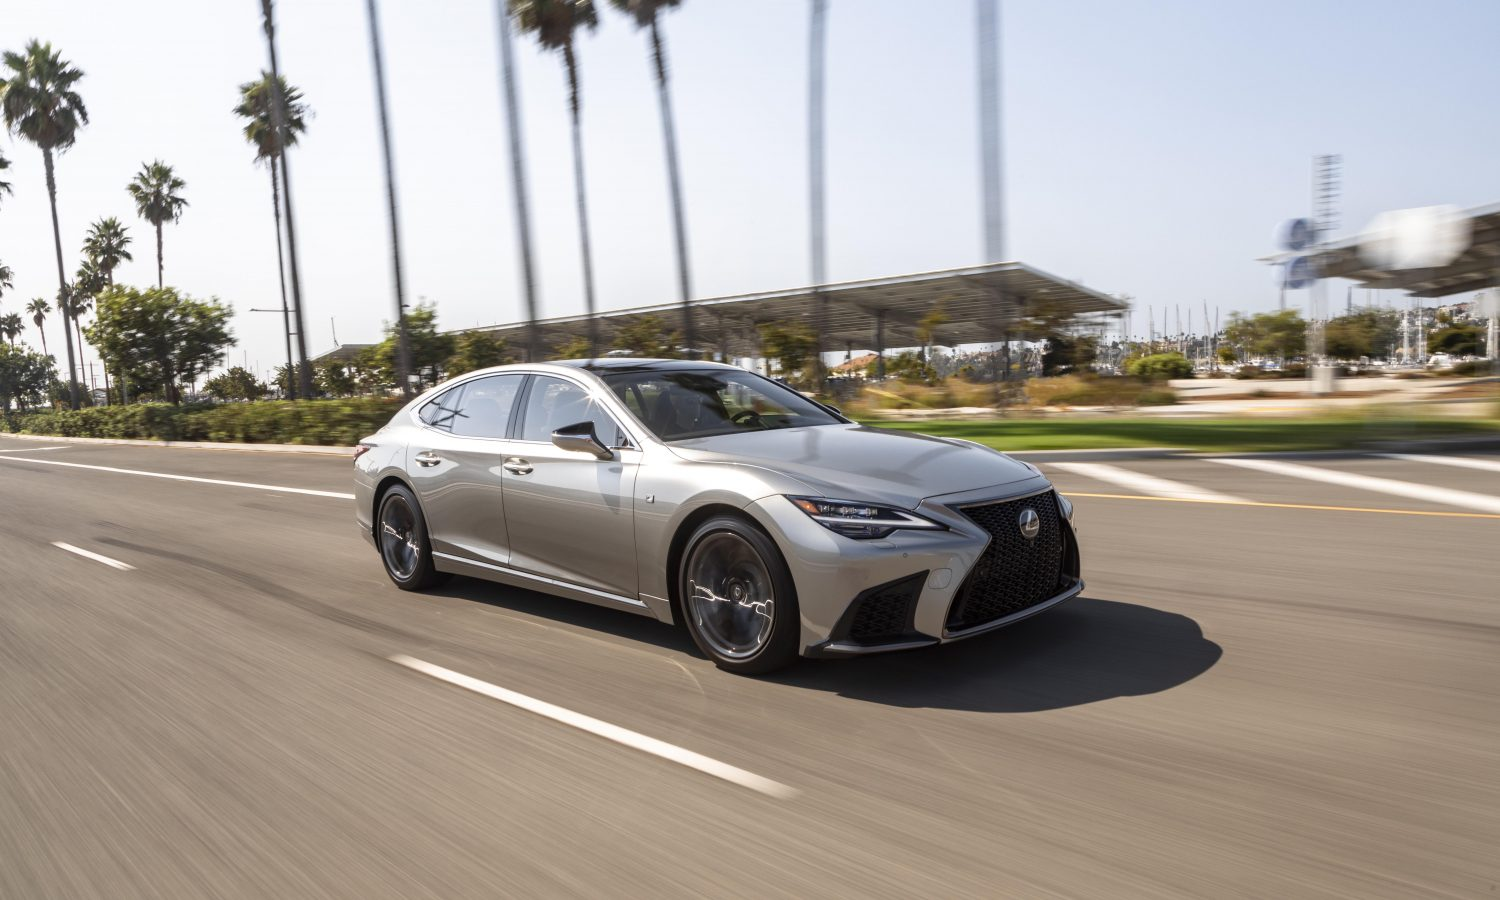 2021 LEXUS LS 500, 500h ADD LAYERS OF FLAGSHIP REFINEMENT